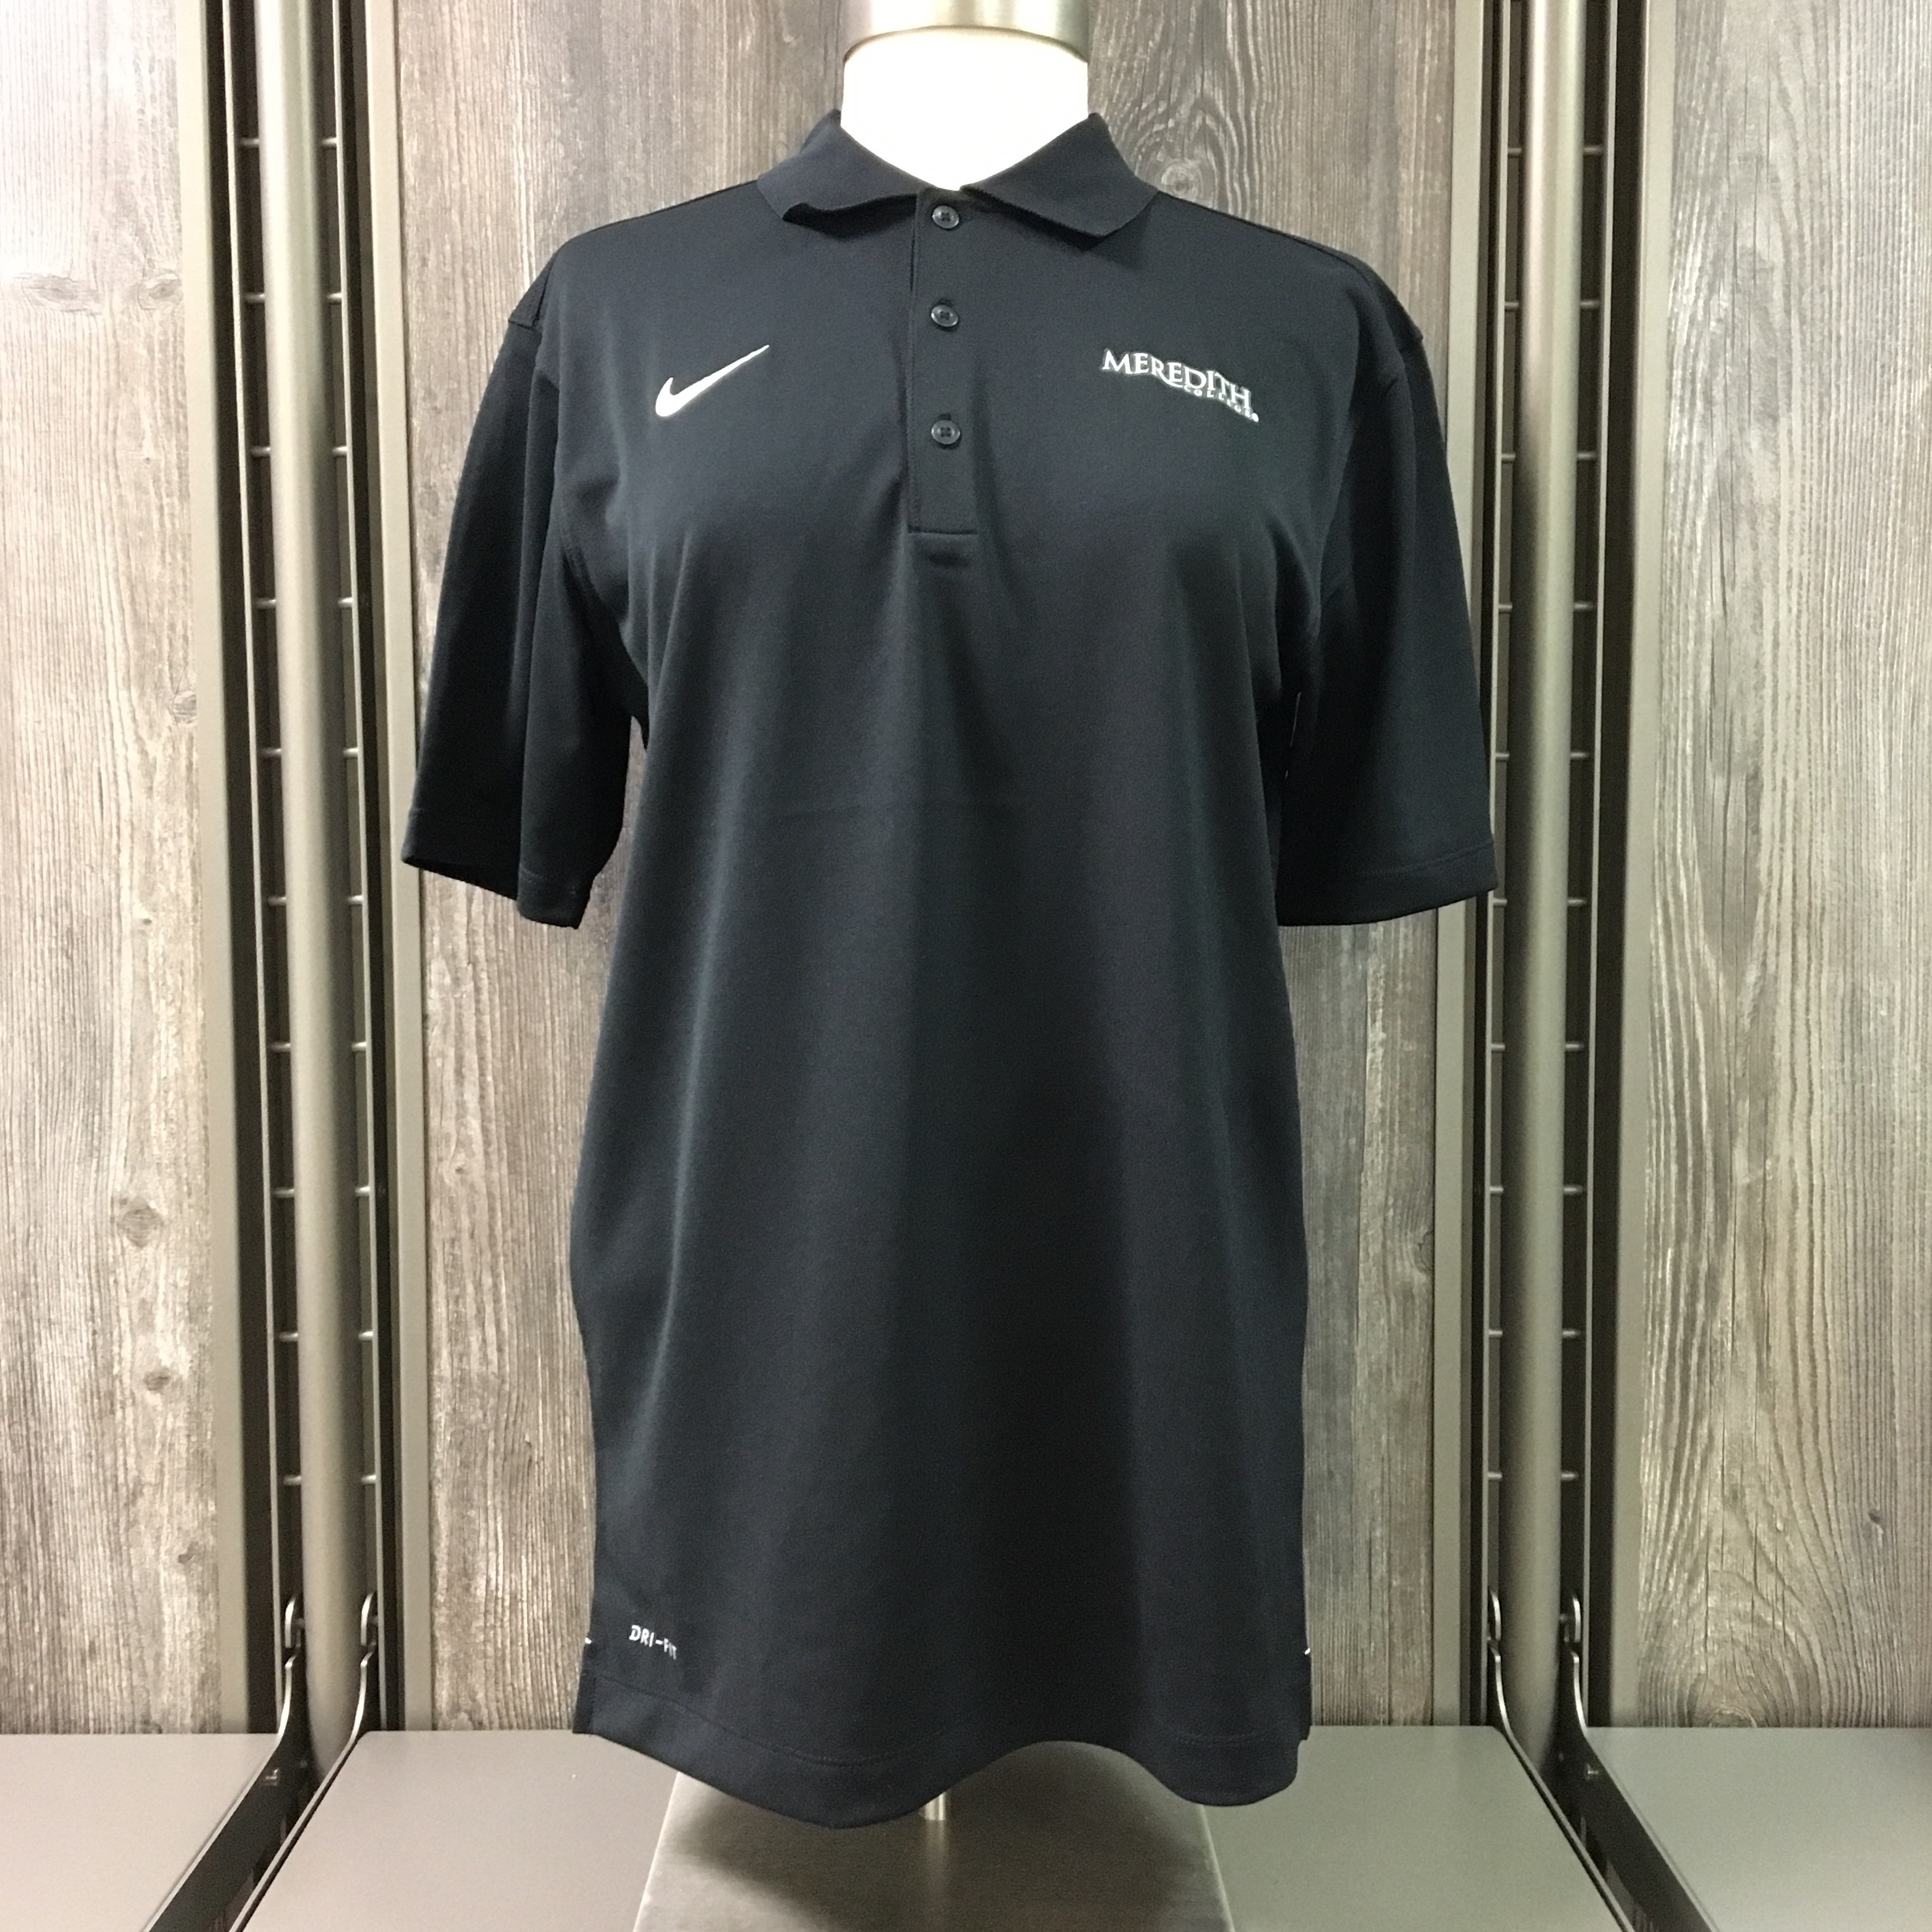 Image for the Men's Varsity Performance Polo, Black product